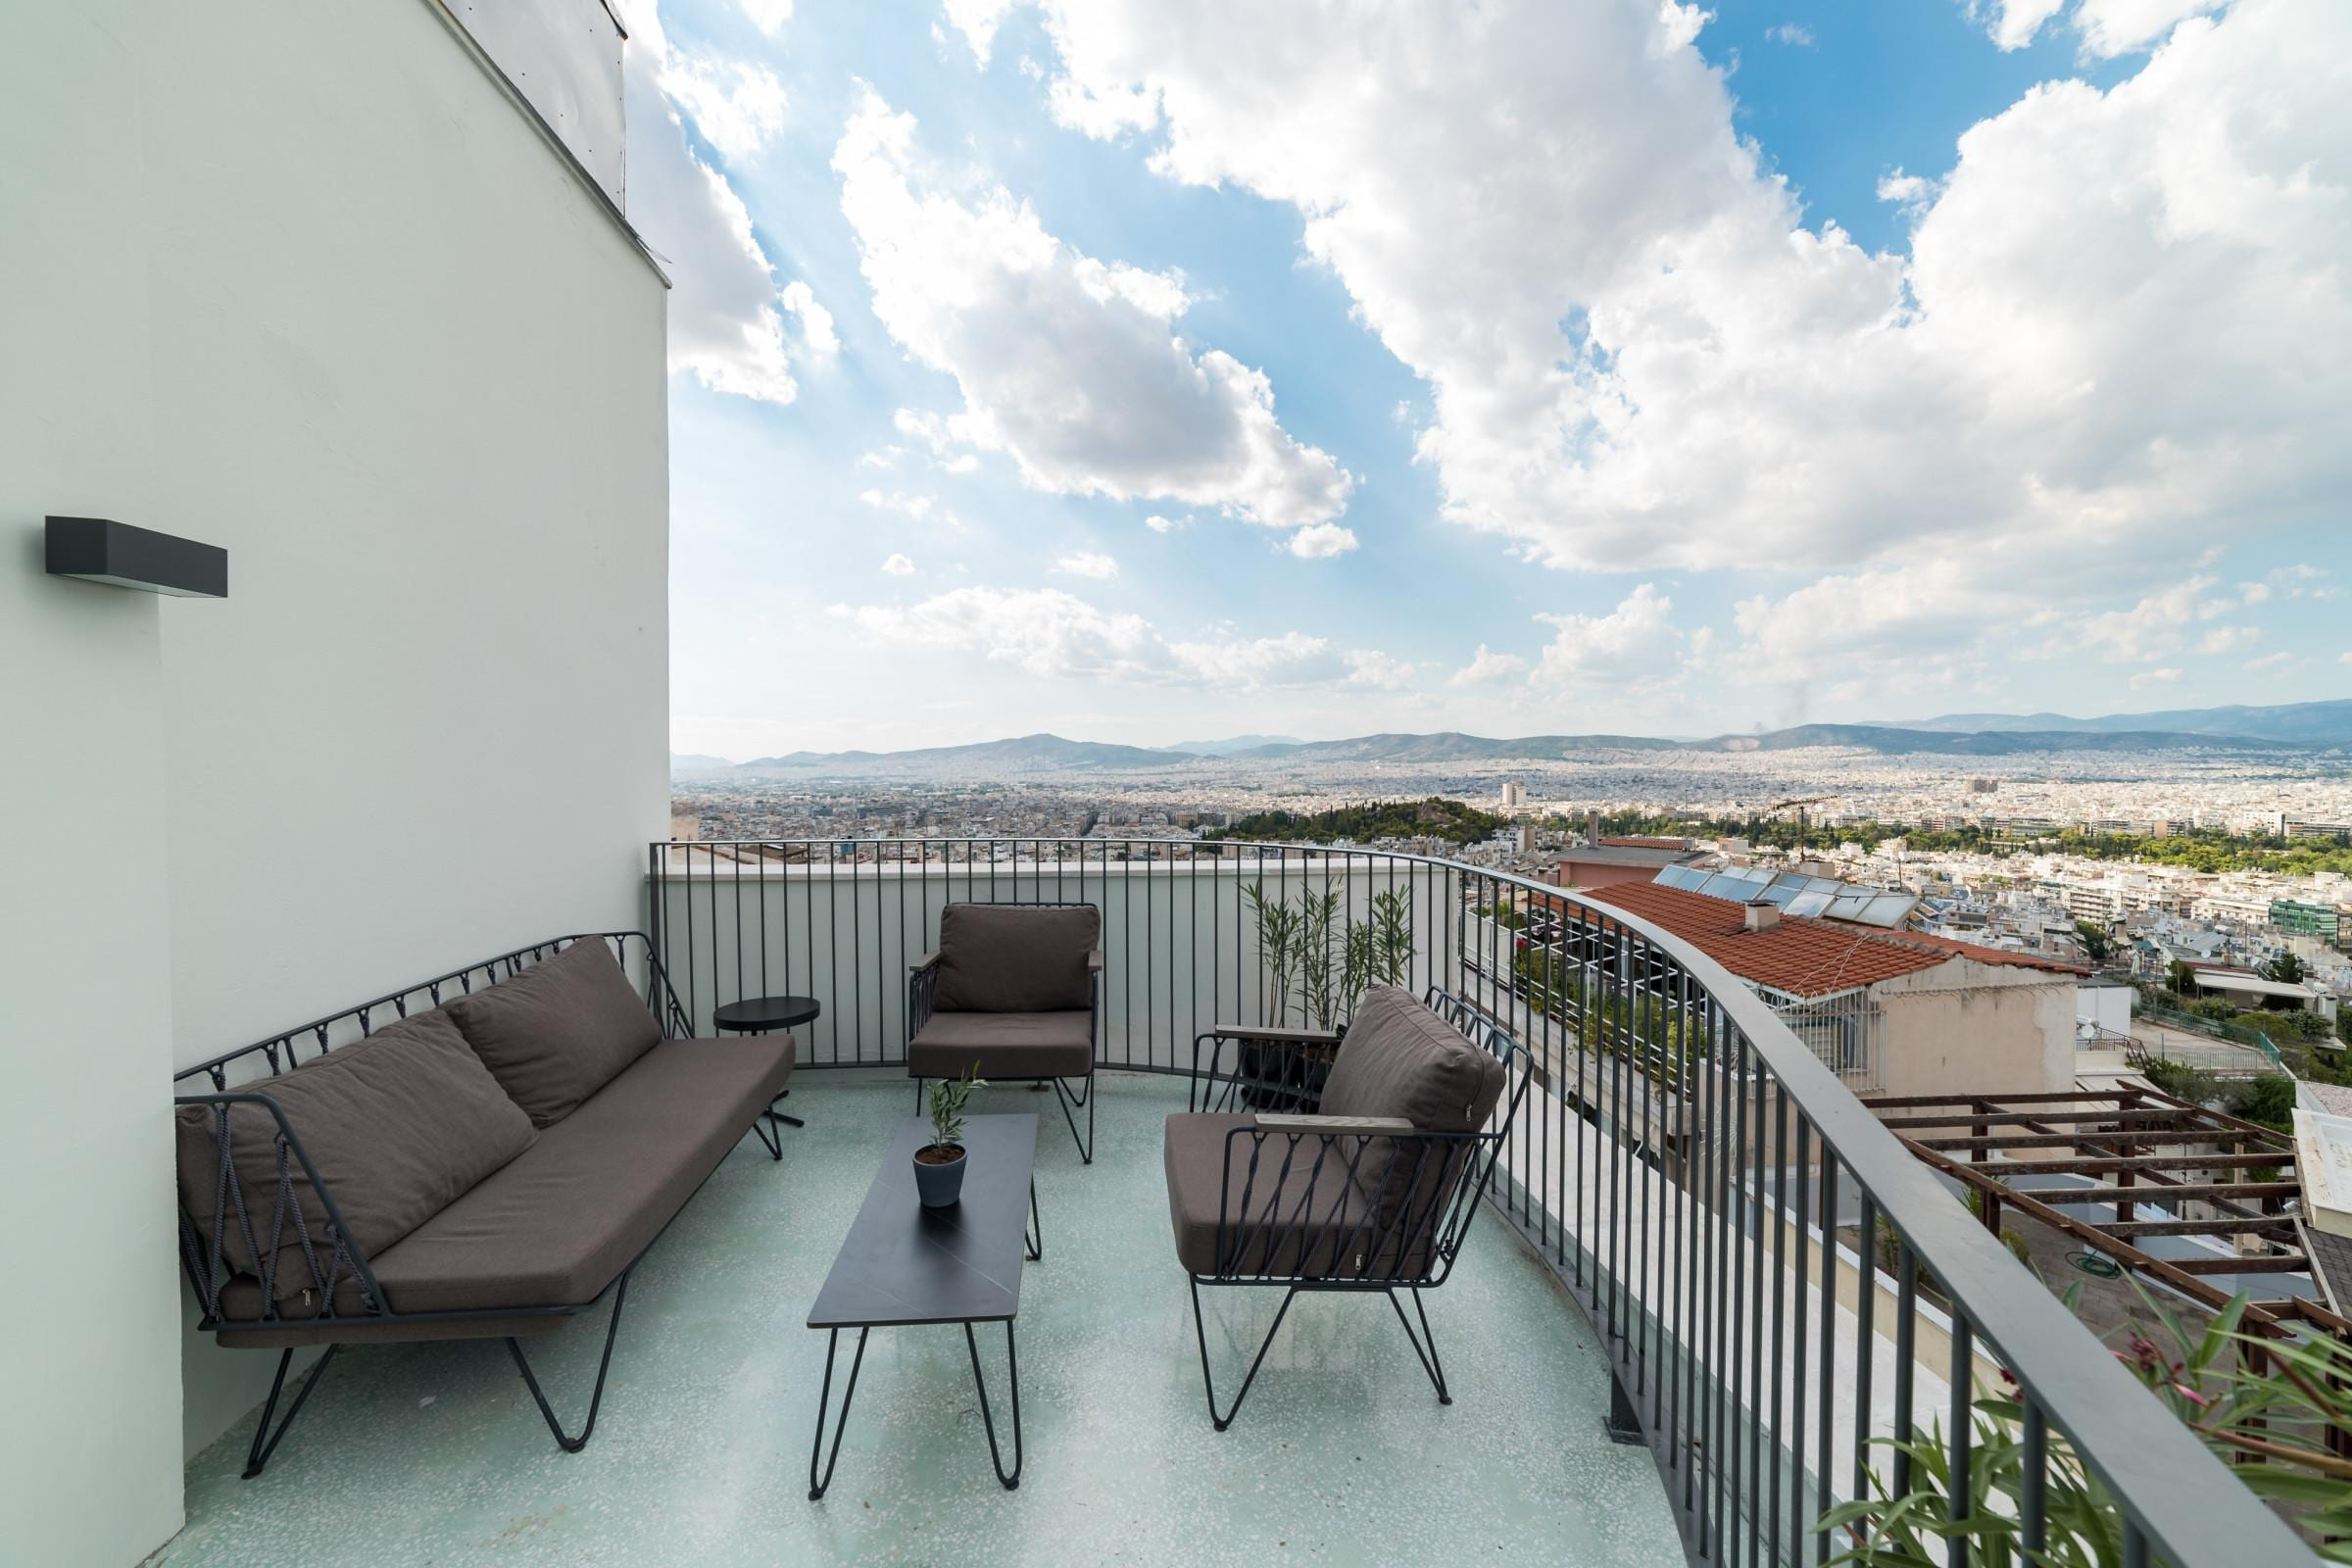 Property Image 2 - Charming 2BR Apartment with Shared Rooftop Terrace and Gym